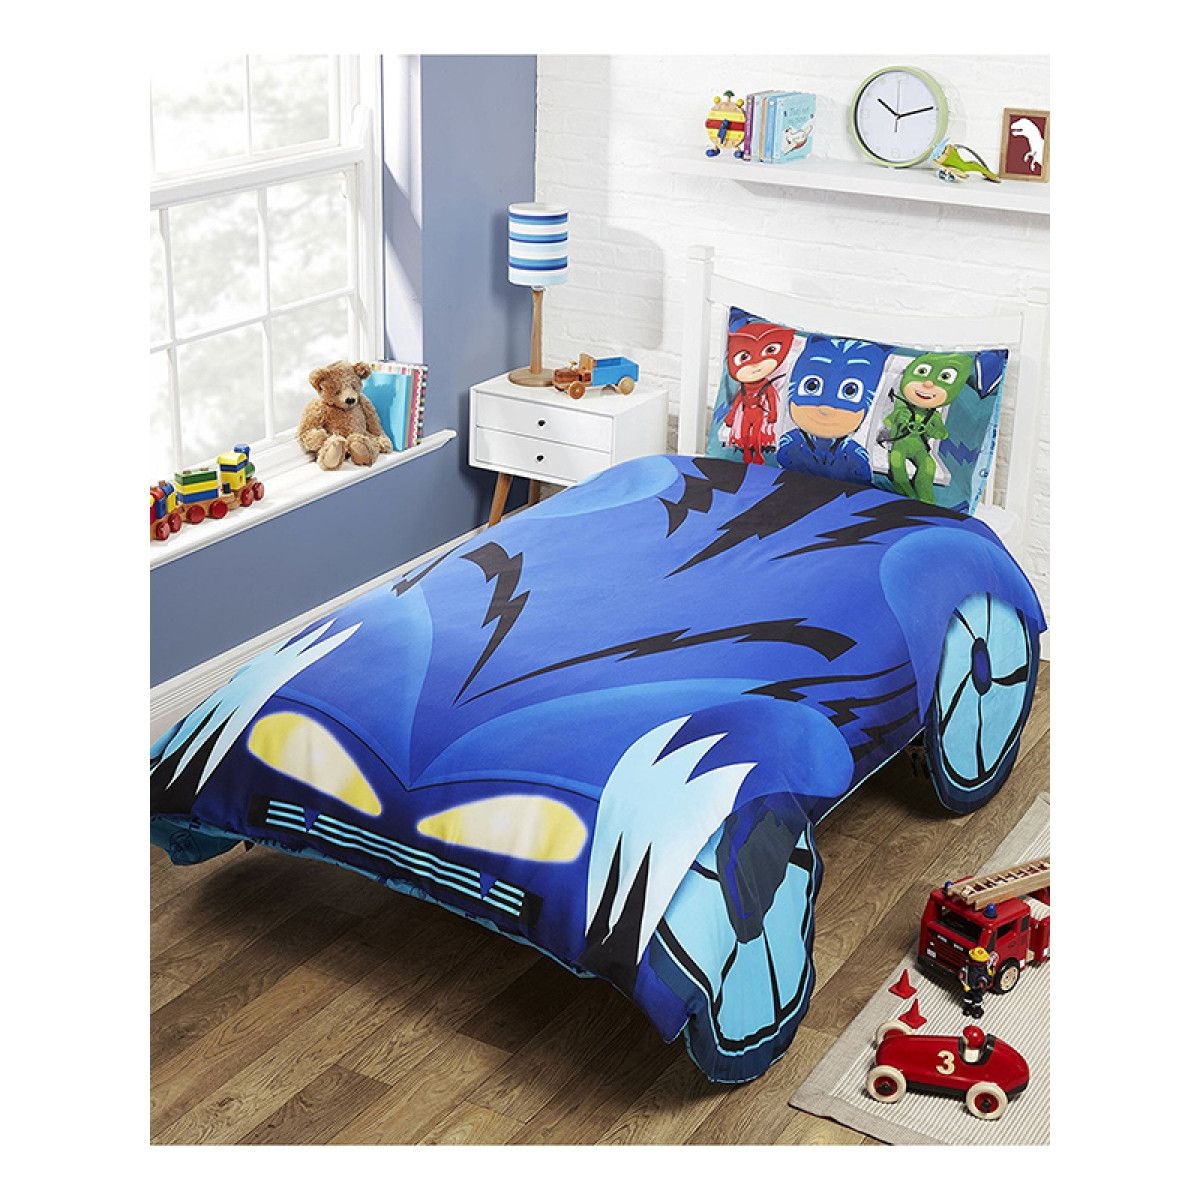 this cool pj masks cat car single duvet cover set features the added